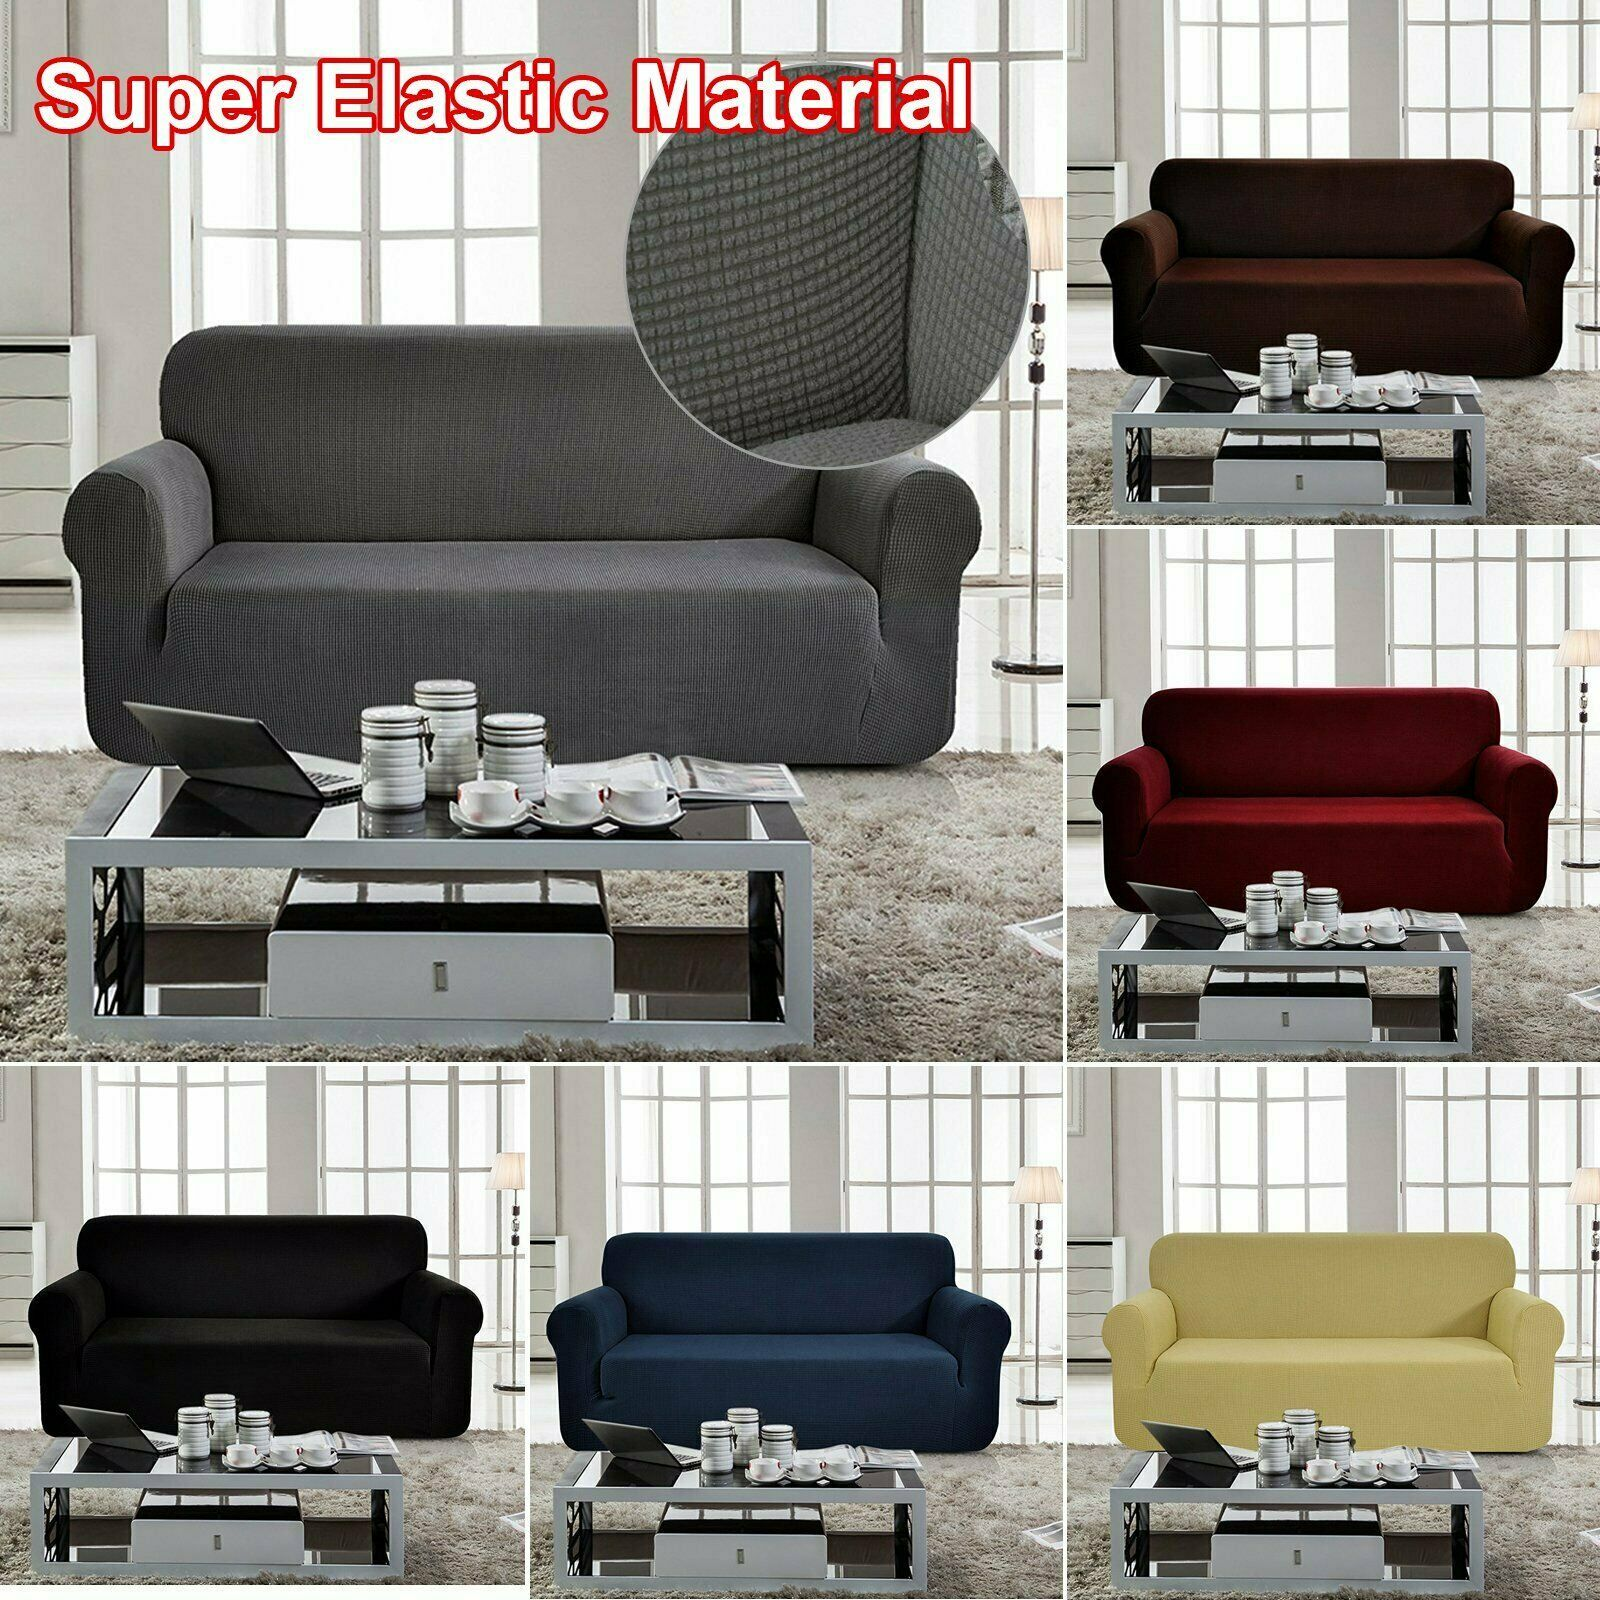 1//2//3//4 Seater Elastic Slipcovers Recliner Sofa Covers Stretch Home Protectors